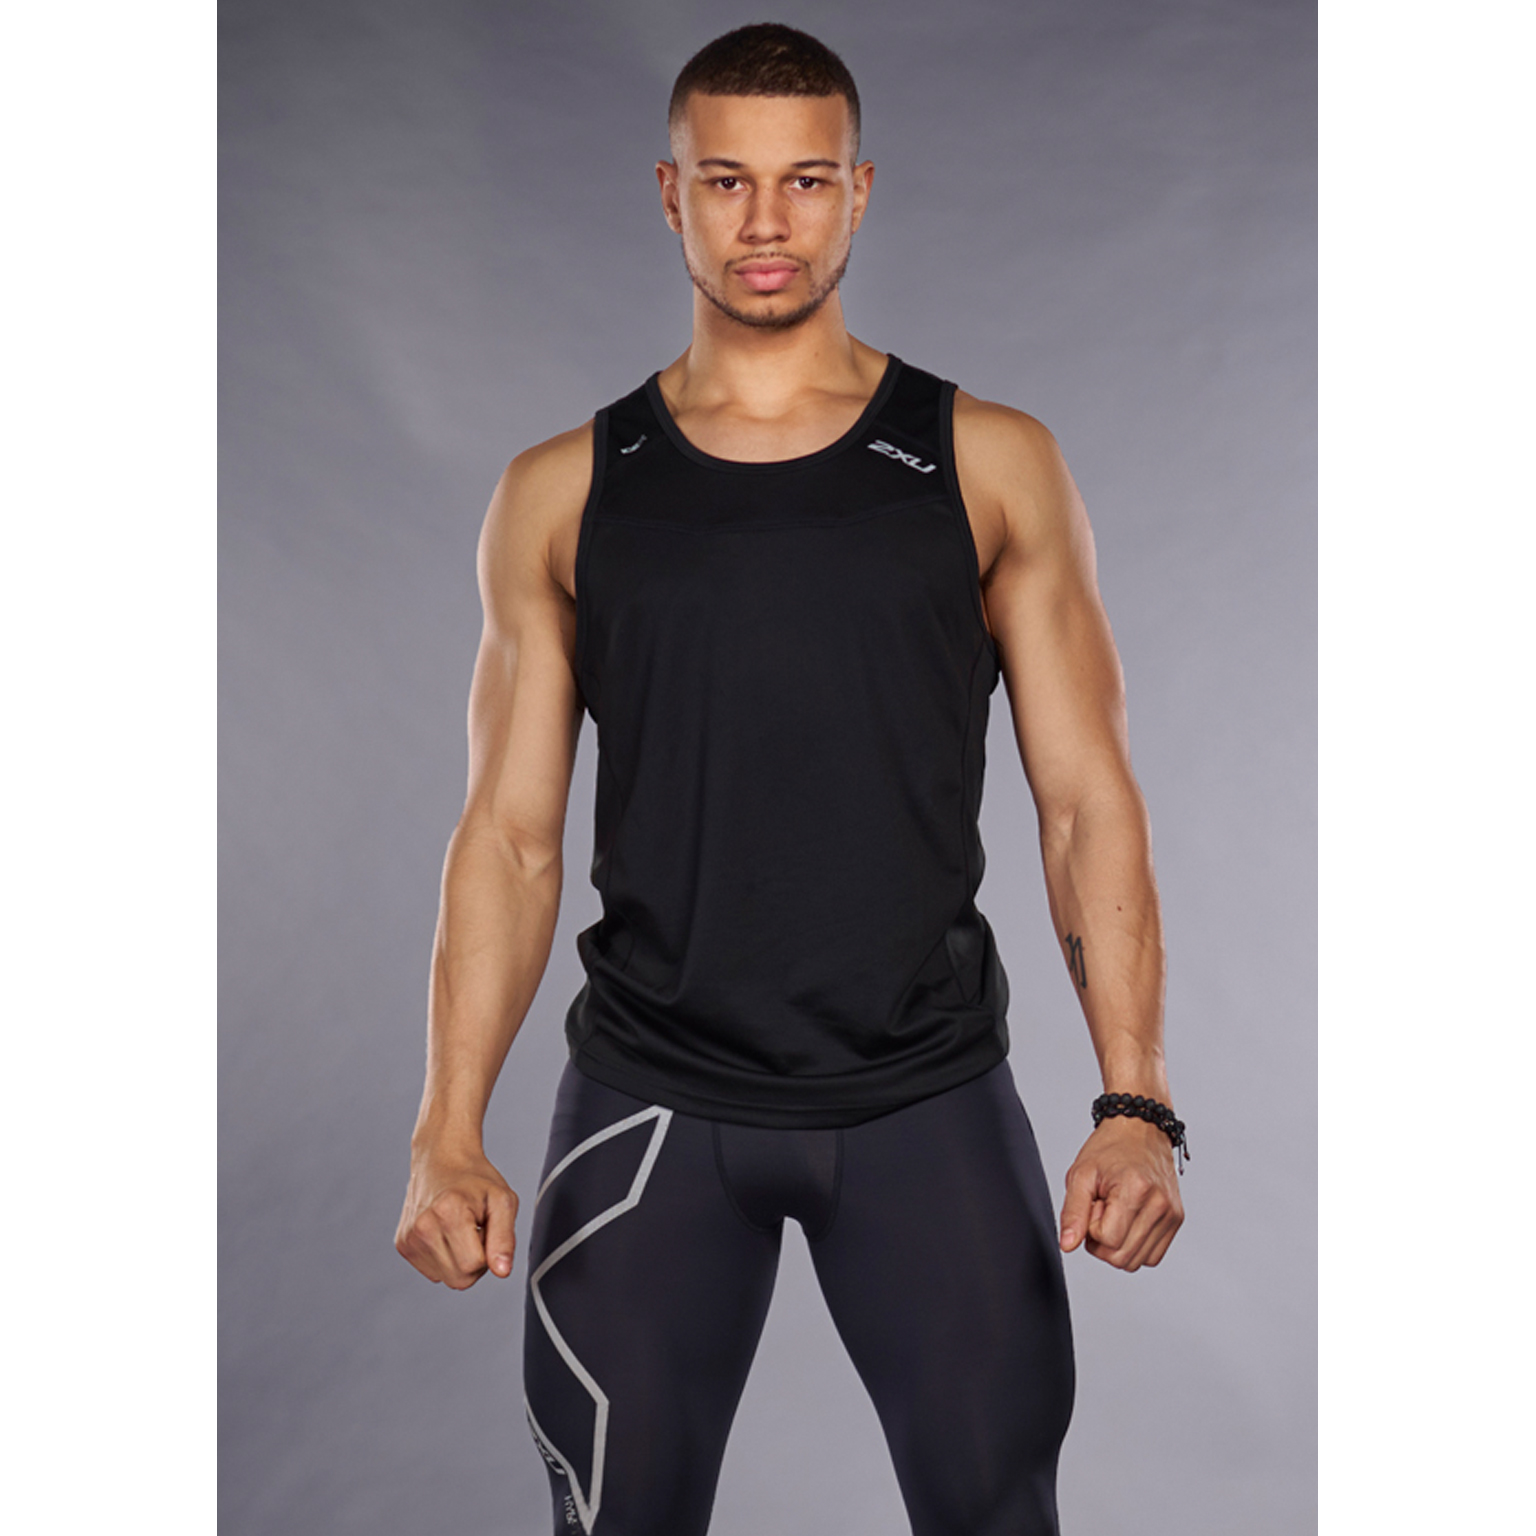 Toronto-Fitness-Model-Agency-2XU-Lifestyle-Commercial-Spencer-Barlow